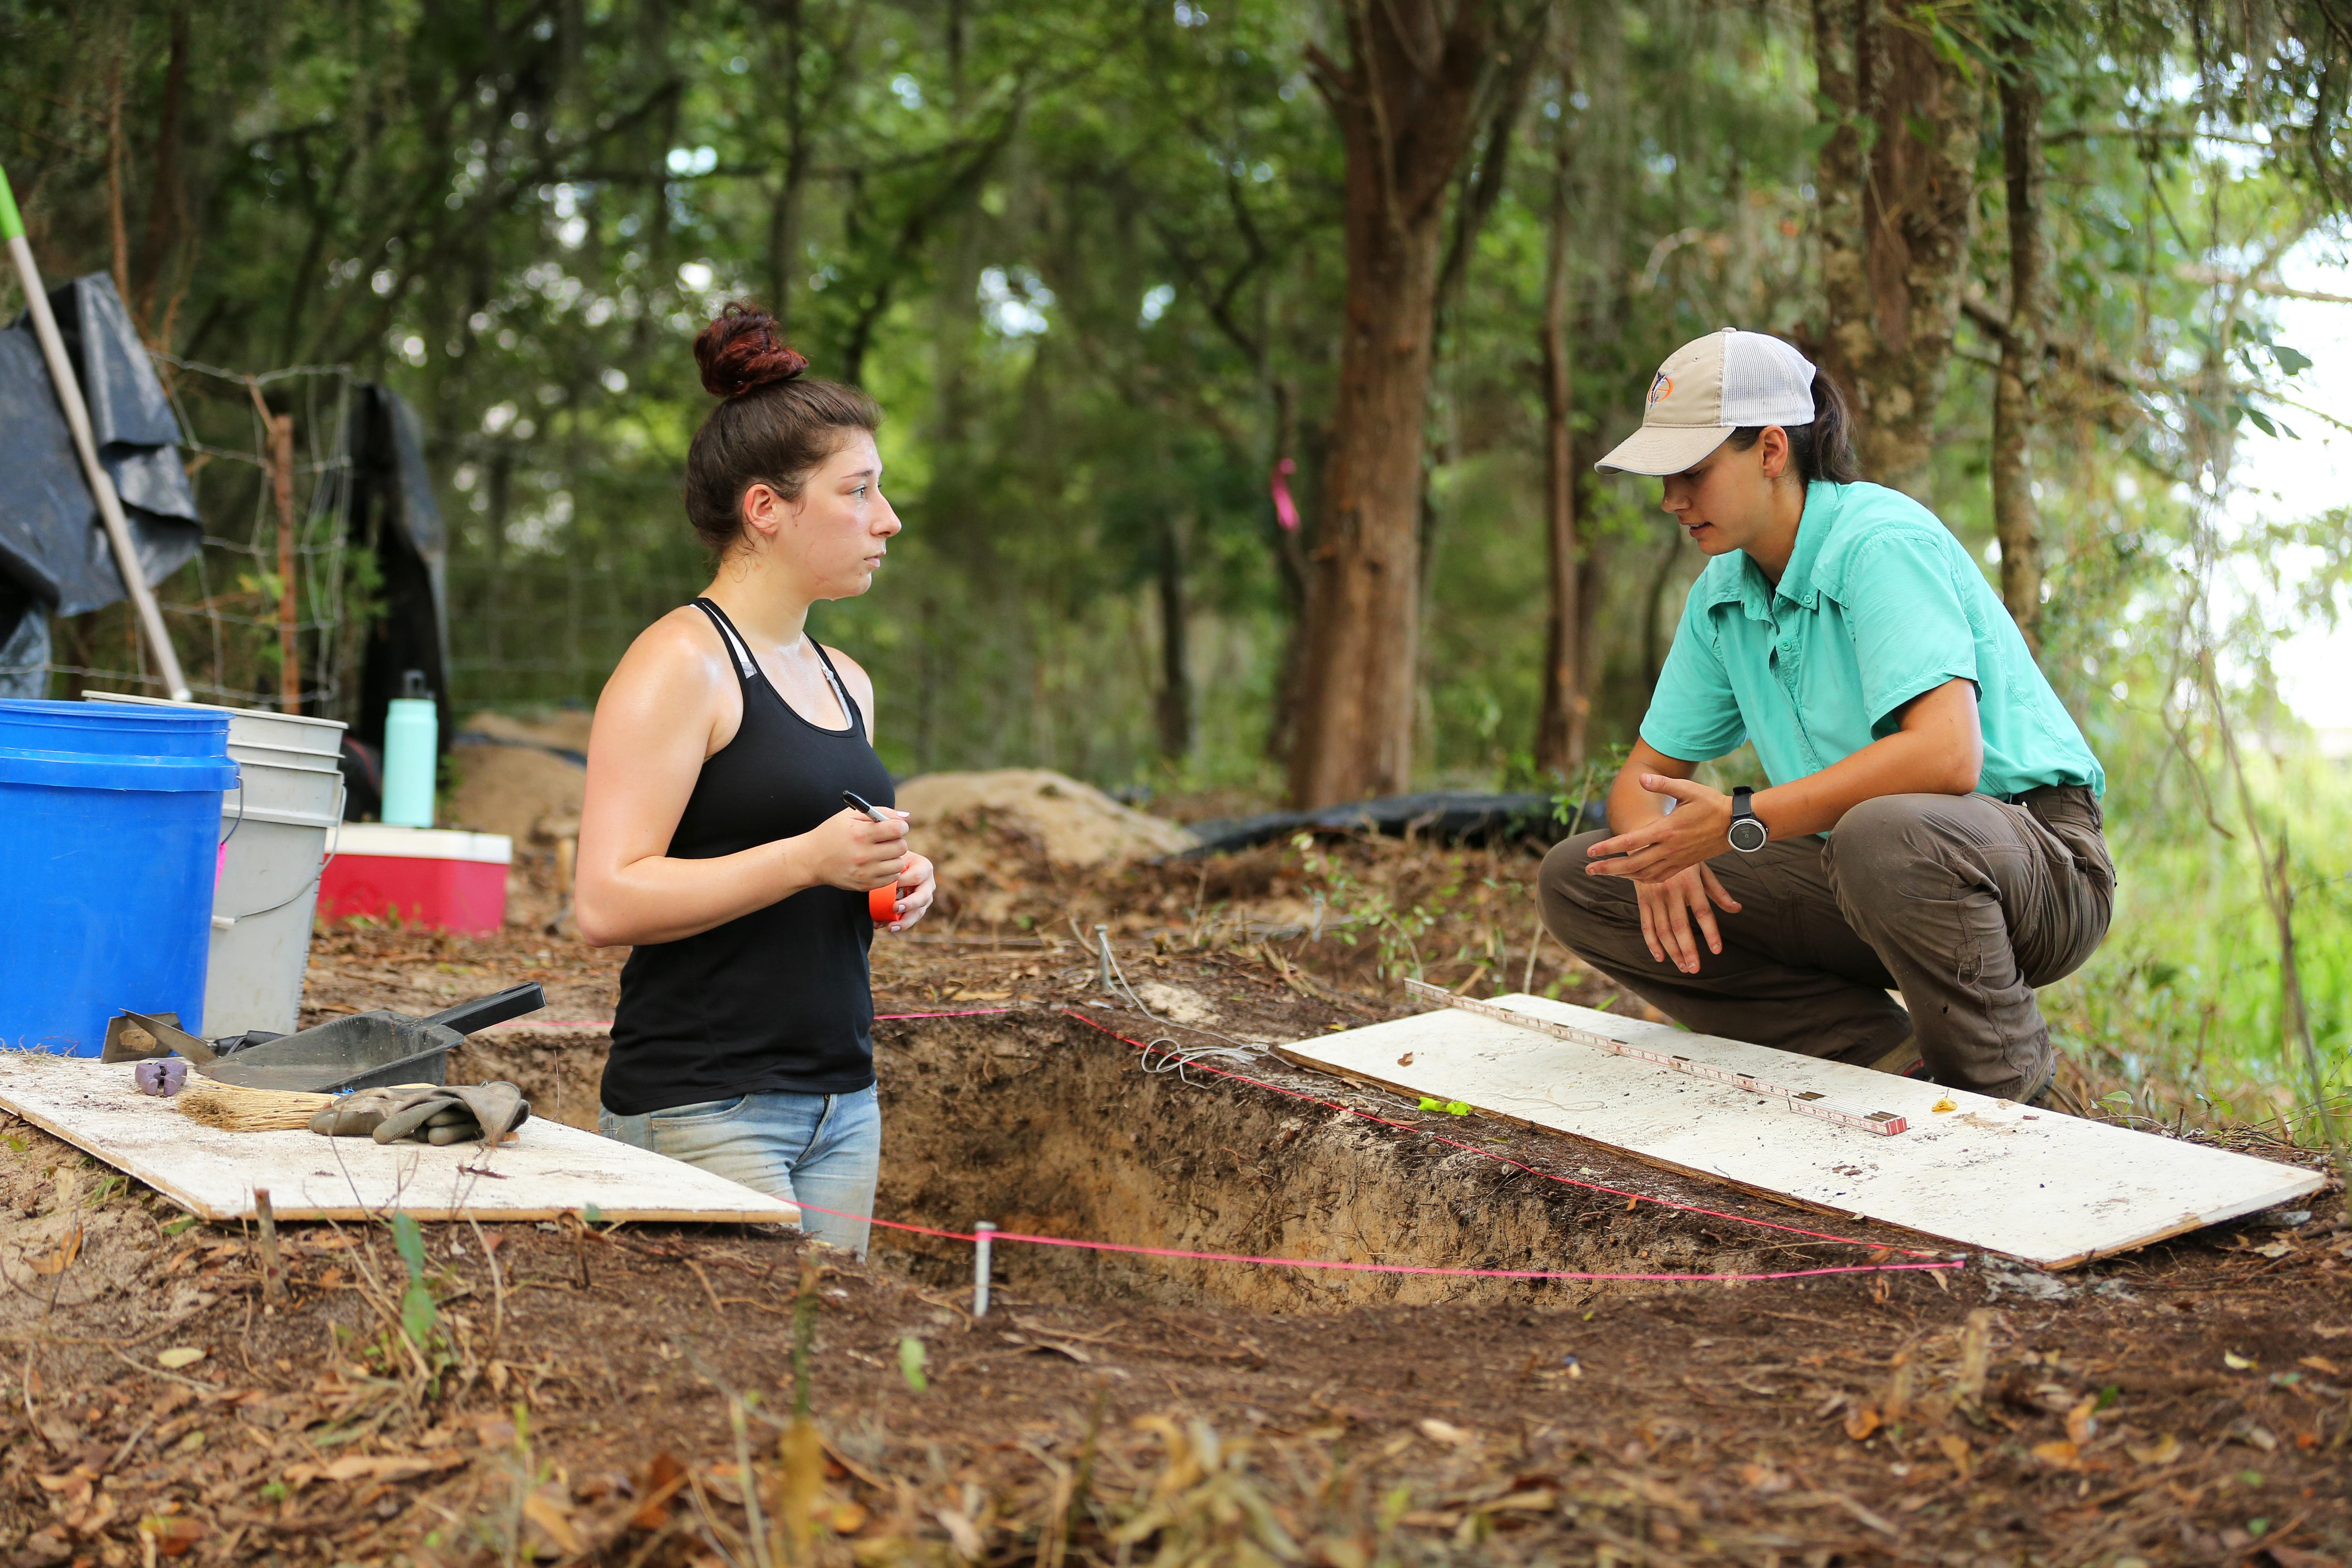 Jordan Temples, who recently earned a bachelor's degree in anthropology from South, talks with Anne Doreland, graduate student and field supervisor.